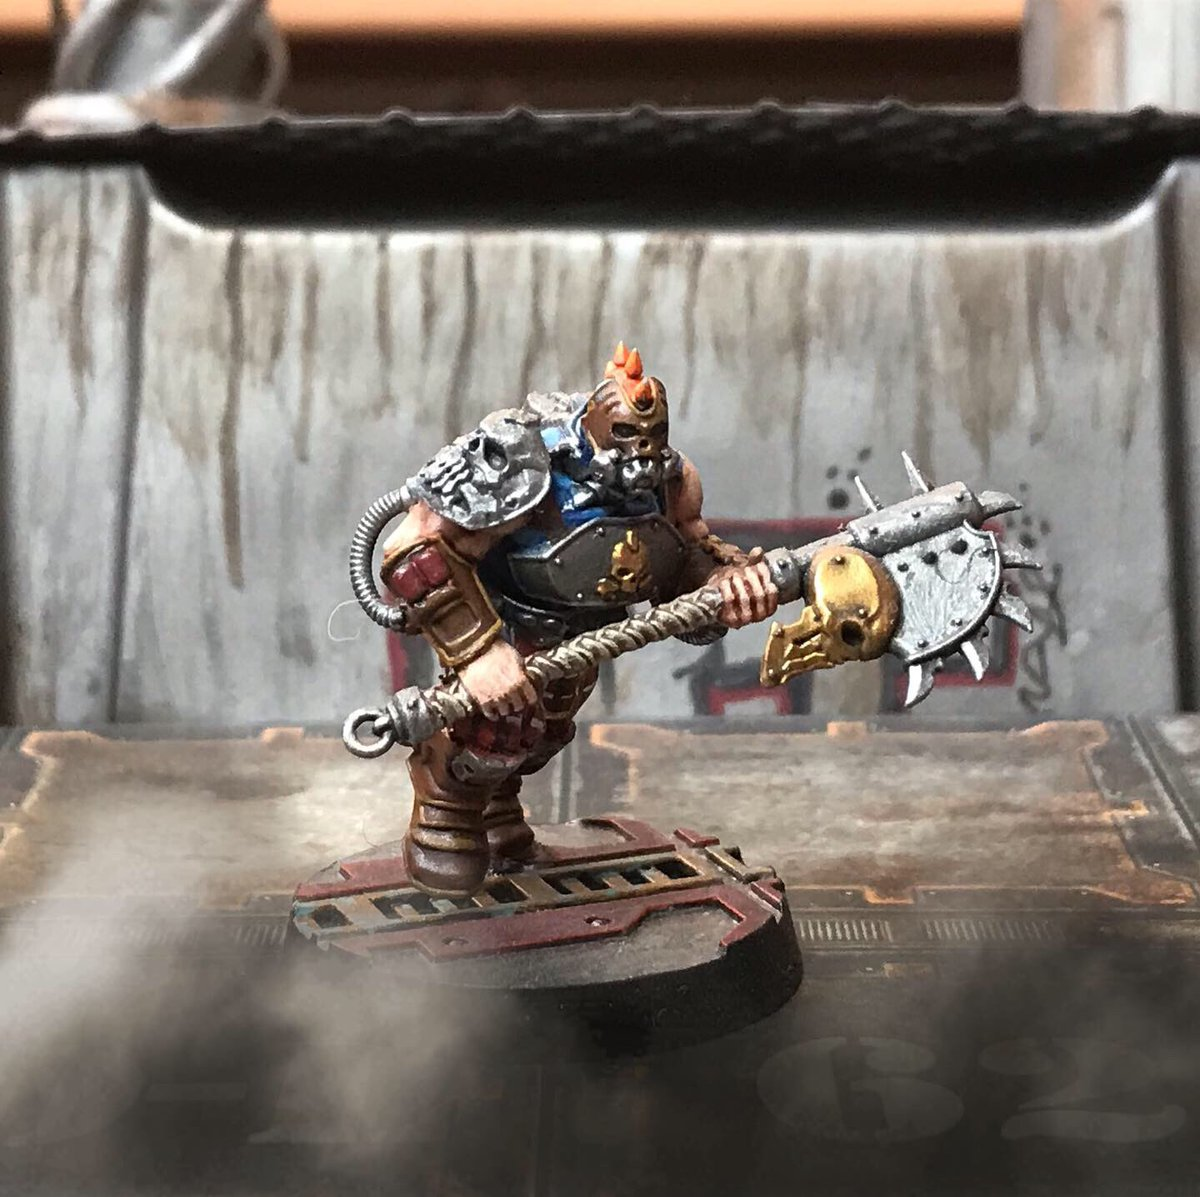 The next warrior has joined the tartan army! Looking forward to getting these guys on the tabletop. #necromunda #paintingminiatures #gamesworkshop #warhammer40k #wargaming #warmongers #warhammercommunity #goliath #painting #miniatures https://t.co/D6KetoJRj8